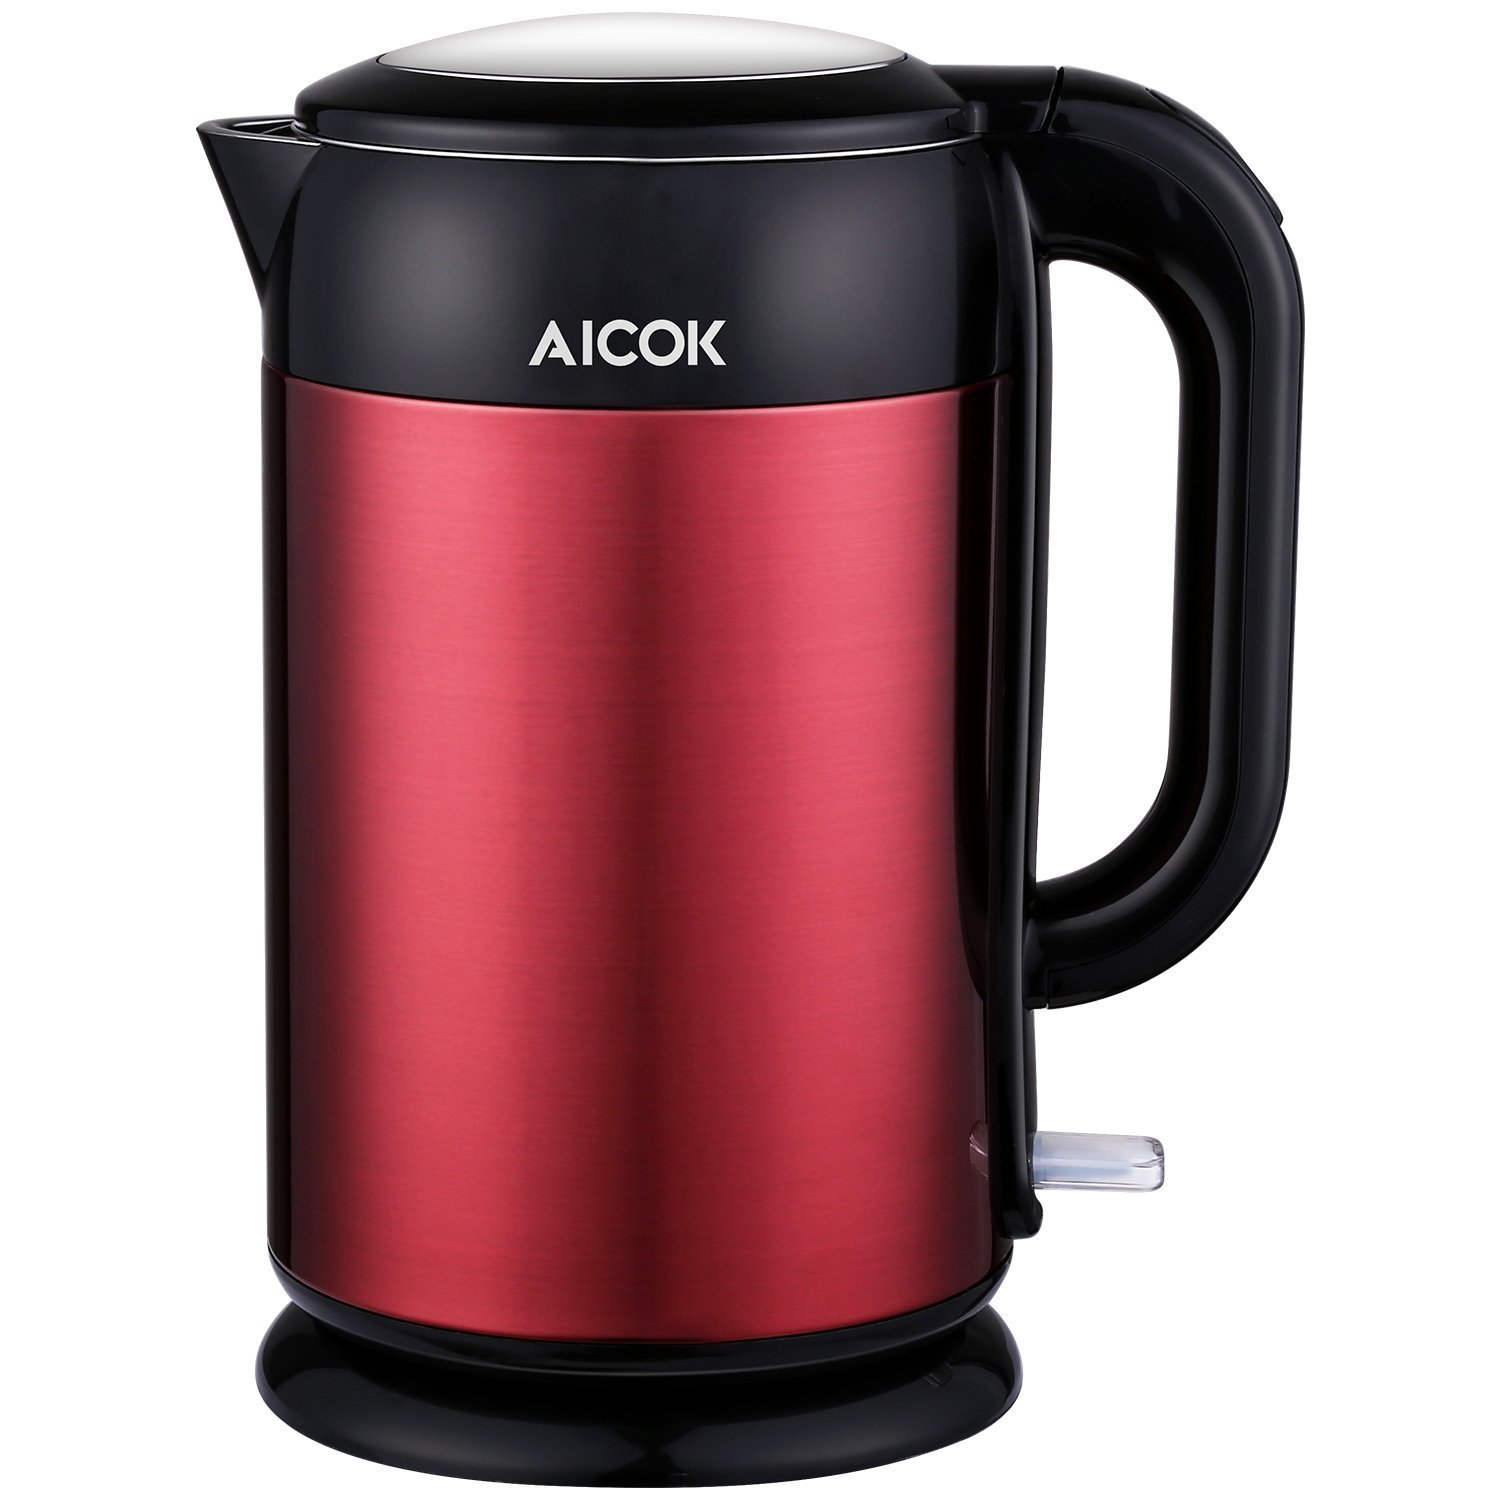 $33.98 (was $42.98) Aicok Electric Kettle Stainless Steel Double Wall Cool Touch Cordless Water Kettle, 1.7-Liter Electric Tea Kettle Water Boiler with 1500W Fast Heatup, Red